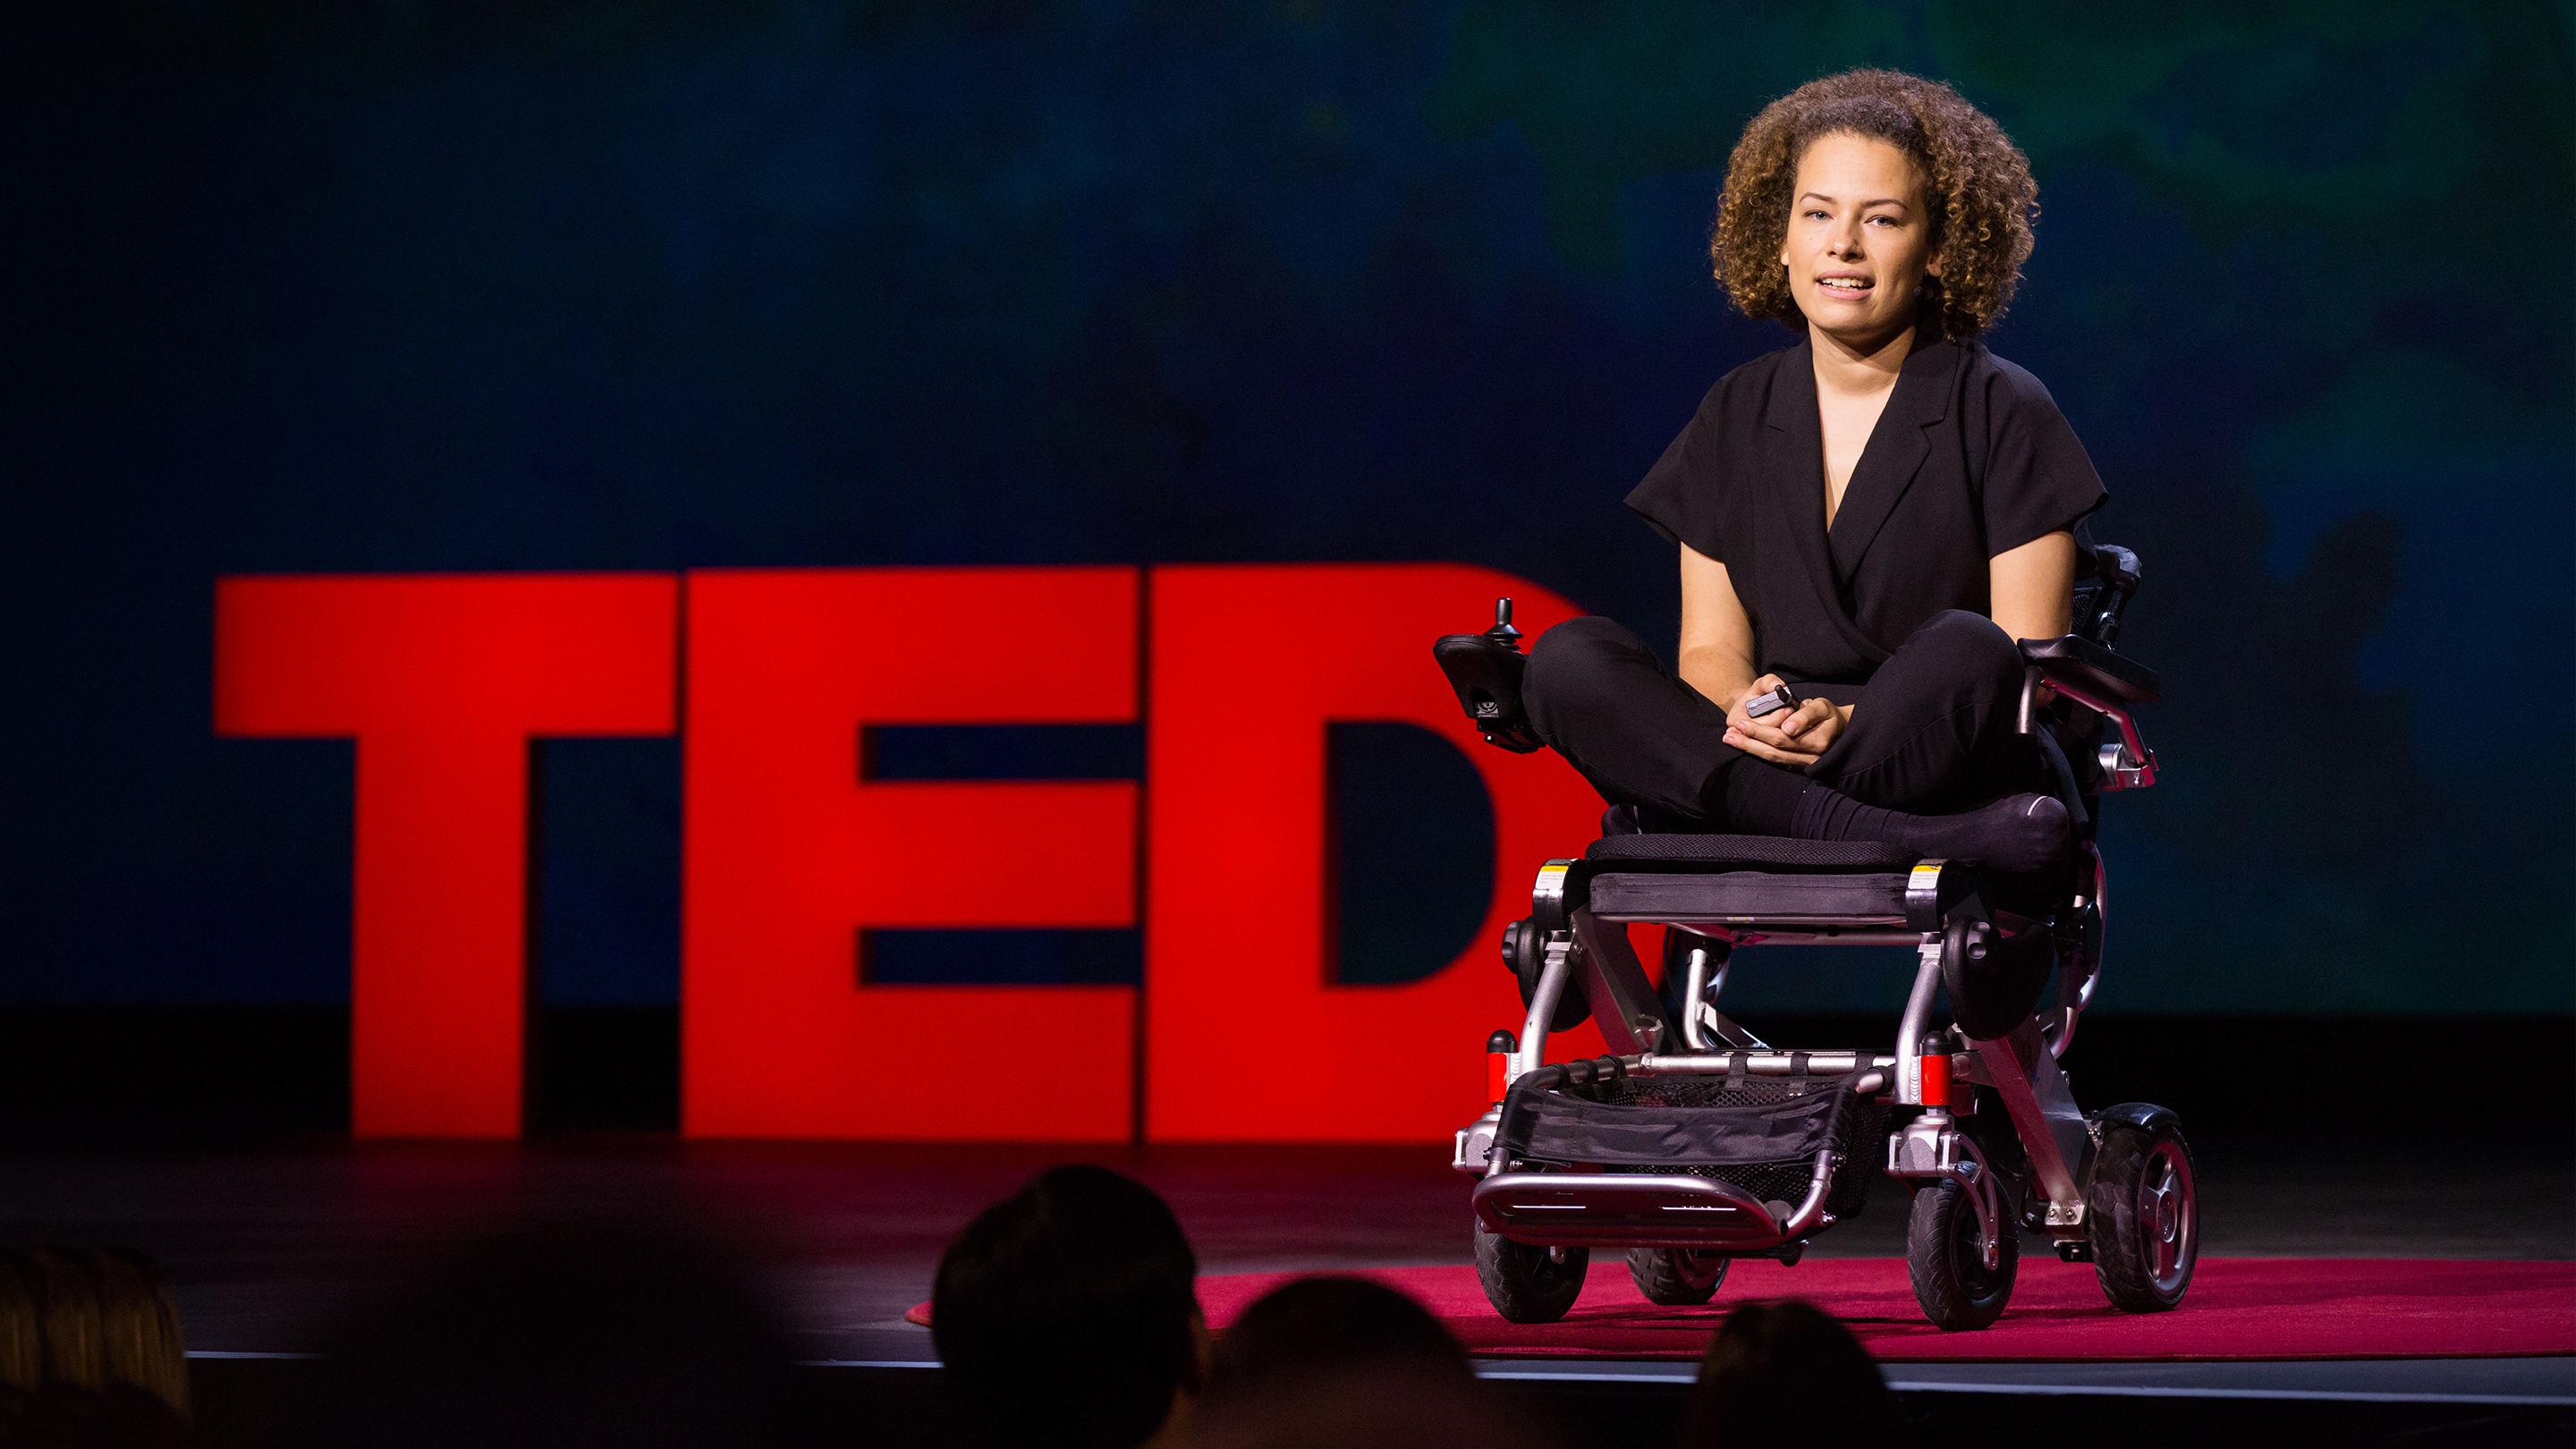 Jen Brea speaks during Fellows talk session at TEDSummit2016, June 26 - 30, 2016, Banff, Canada. Photo: Ryan Lash / TED